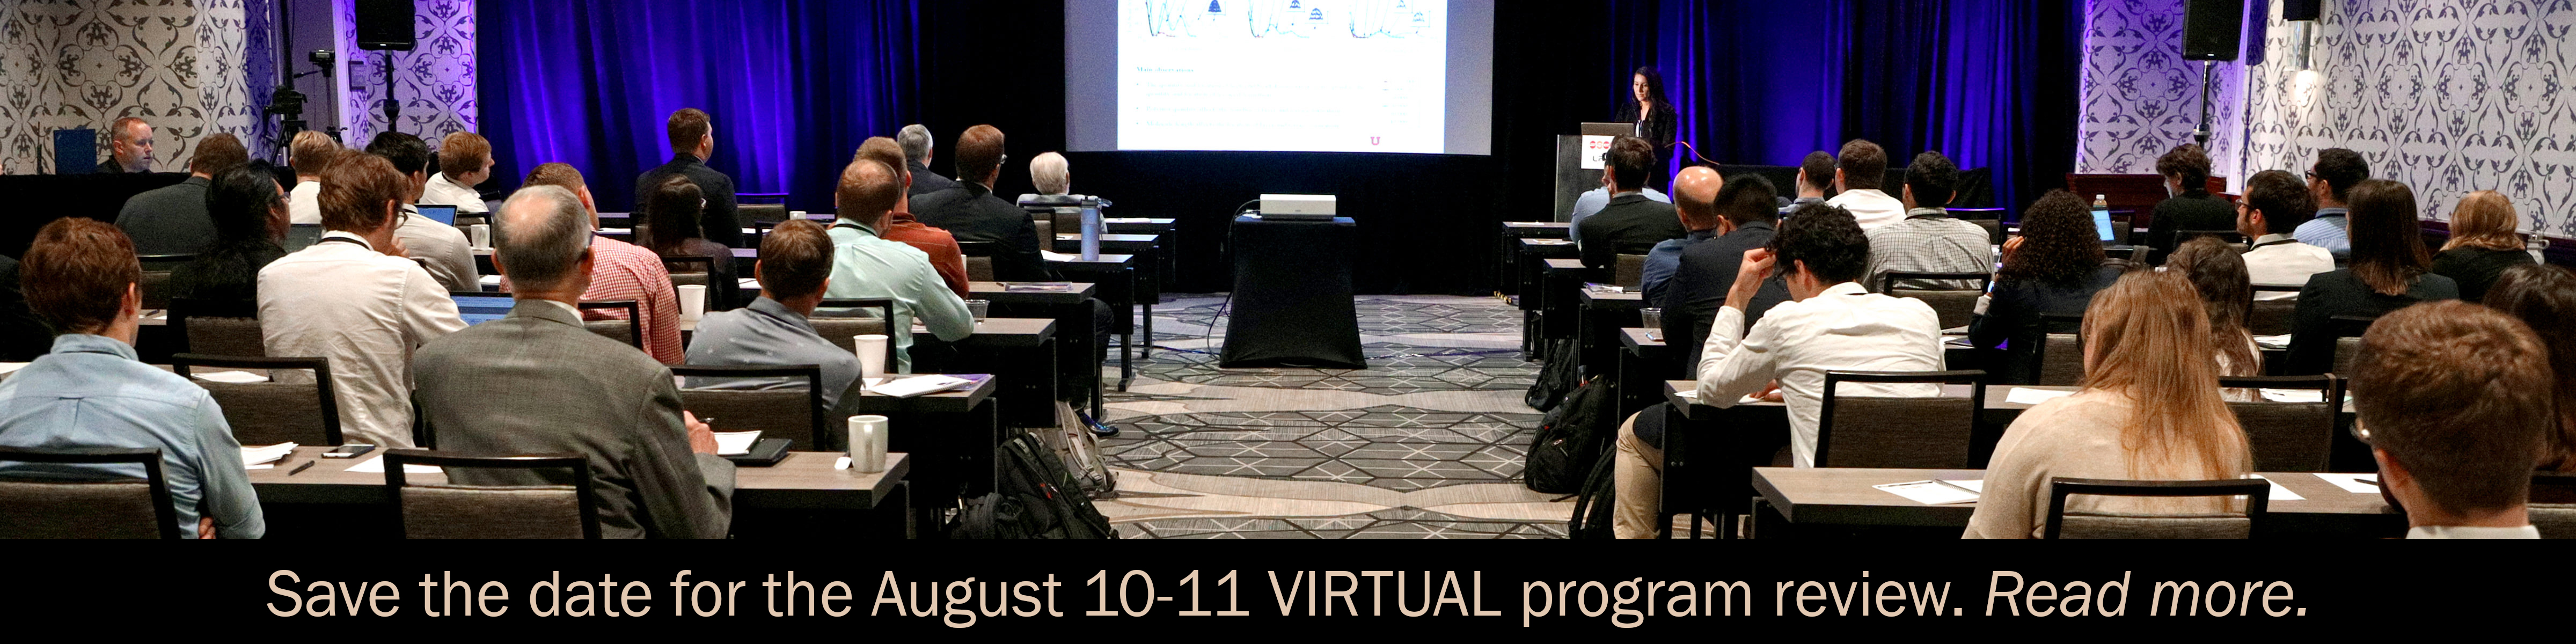 2021 virtual program review is set for August 10-11.